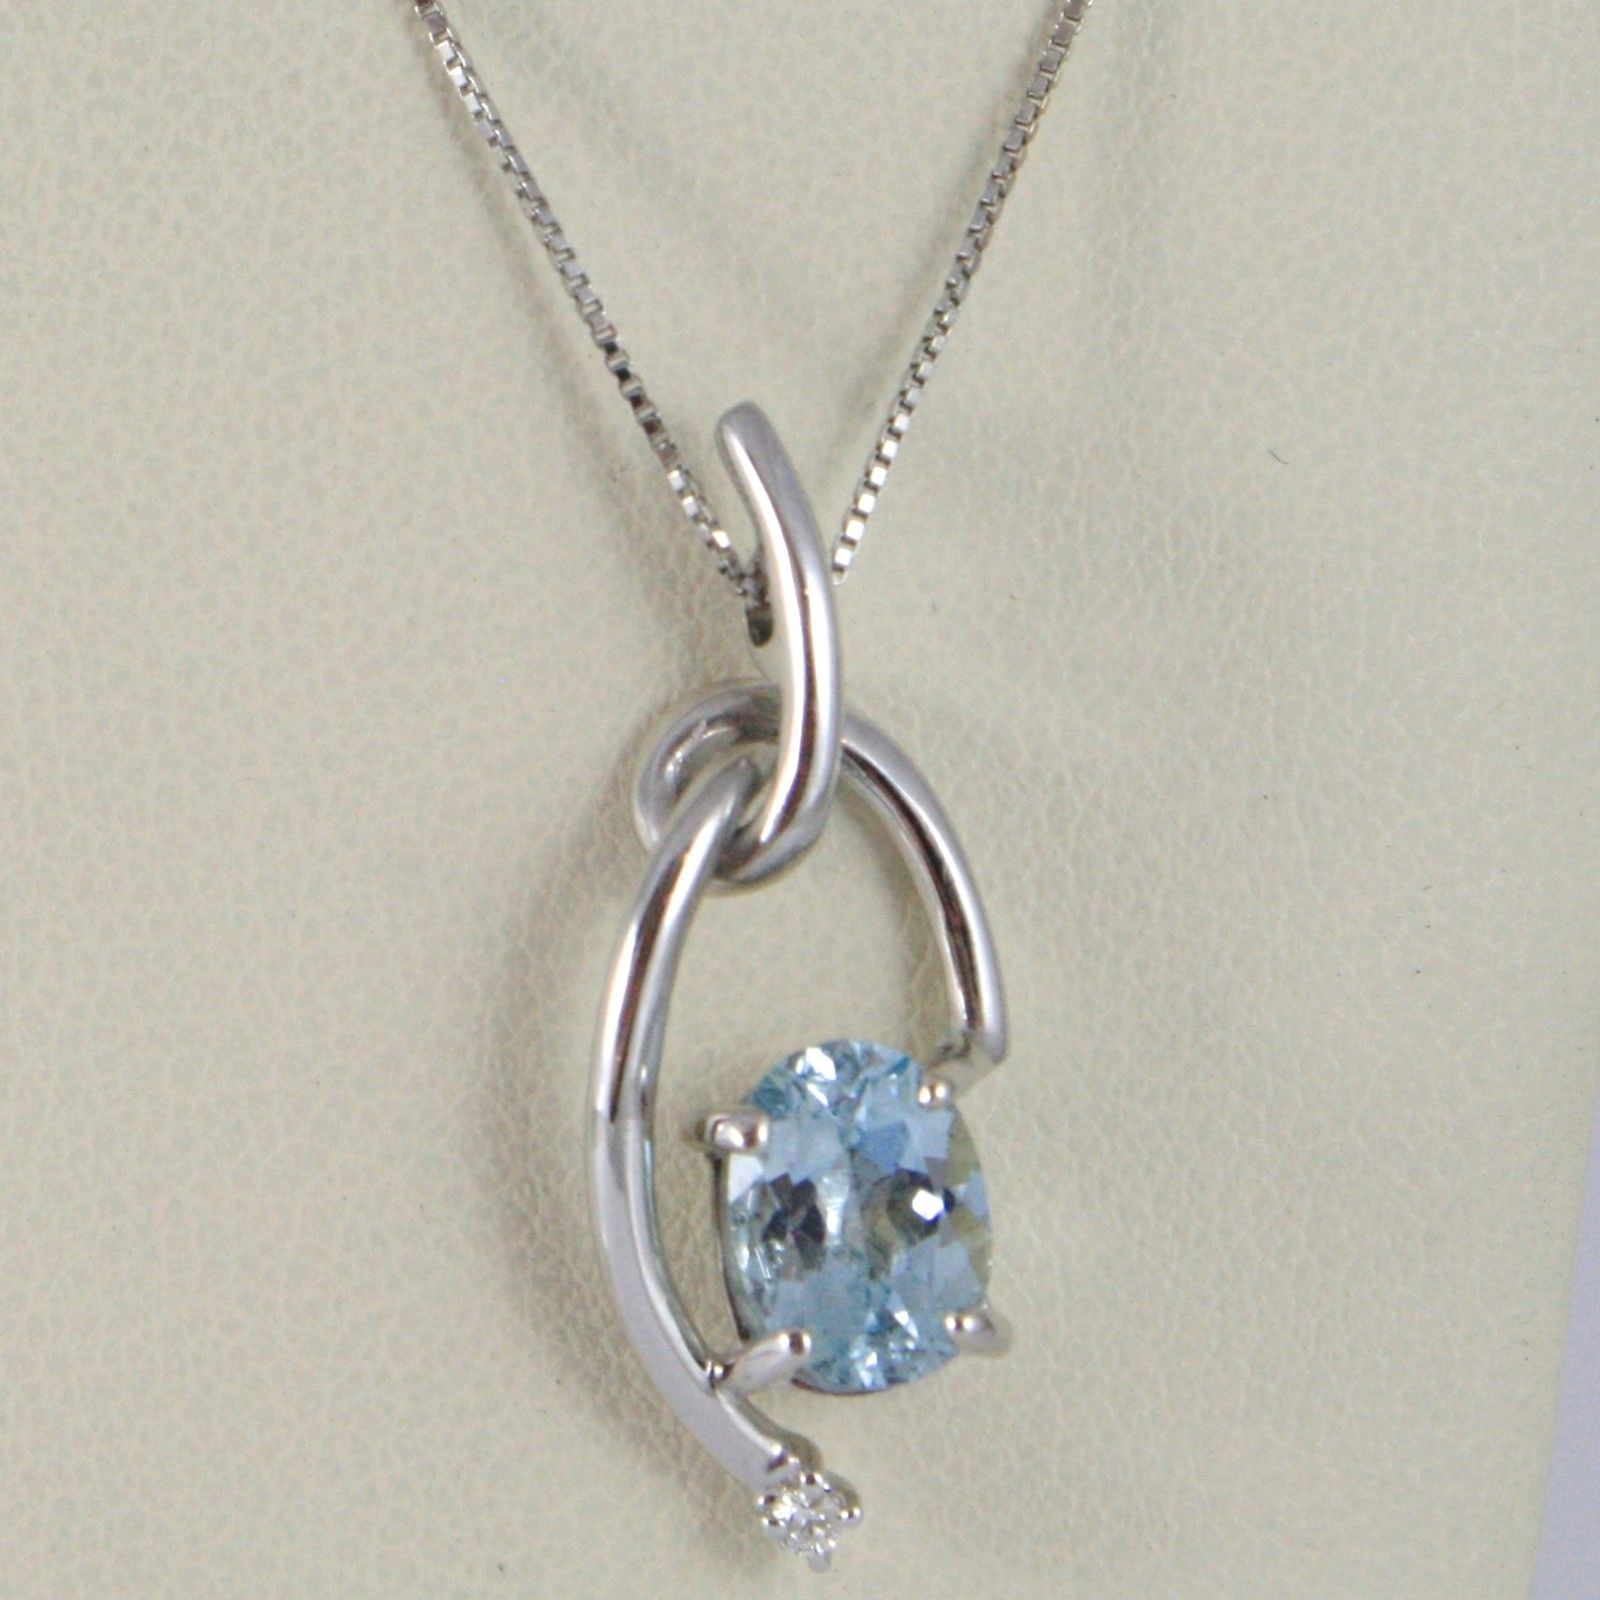 18K WHITE GOLD NECKLACE, AQUAMARINE WOVEN PENDANT WITH DIAMOND, VENETIAN CHAIN